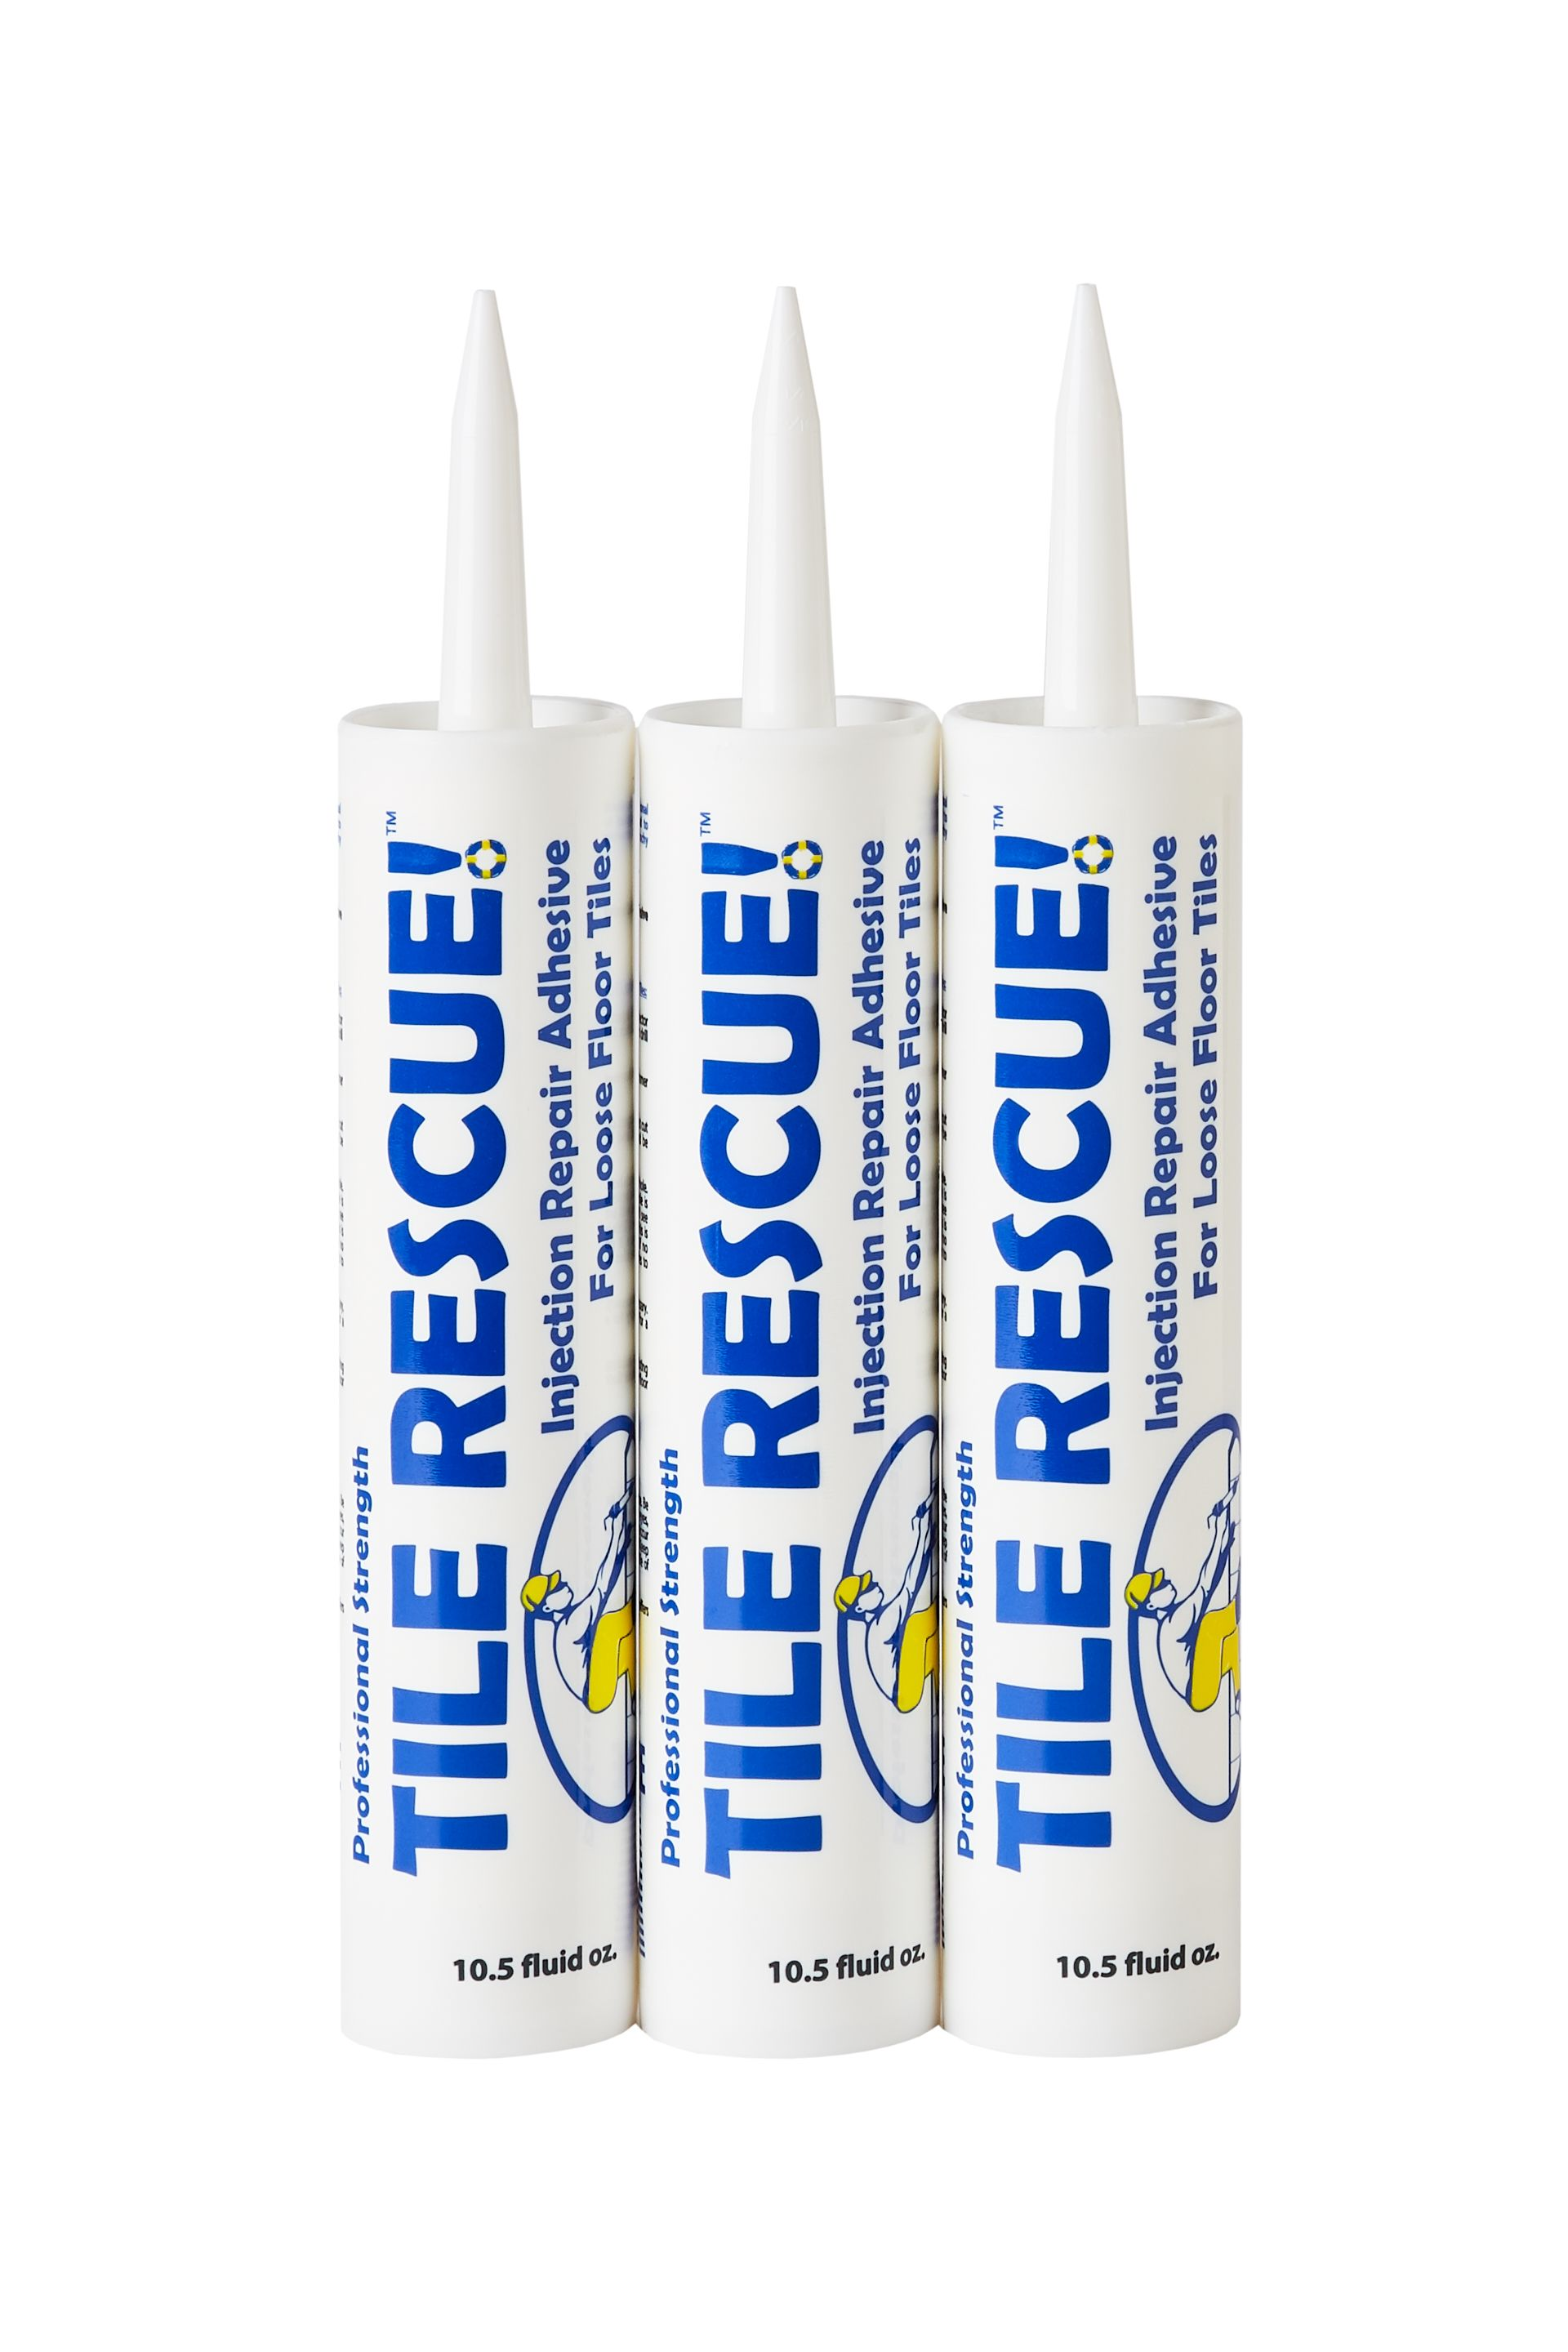 Tile rescue injection repair adhesive is a professional strength